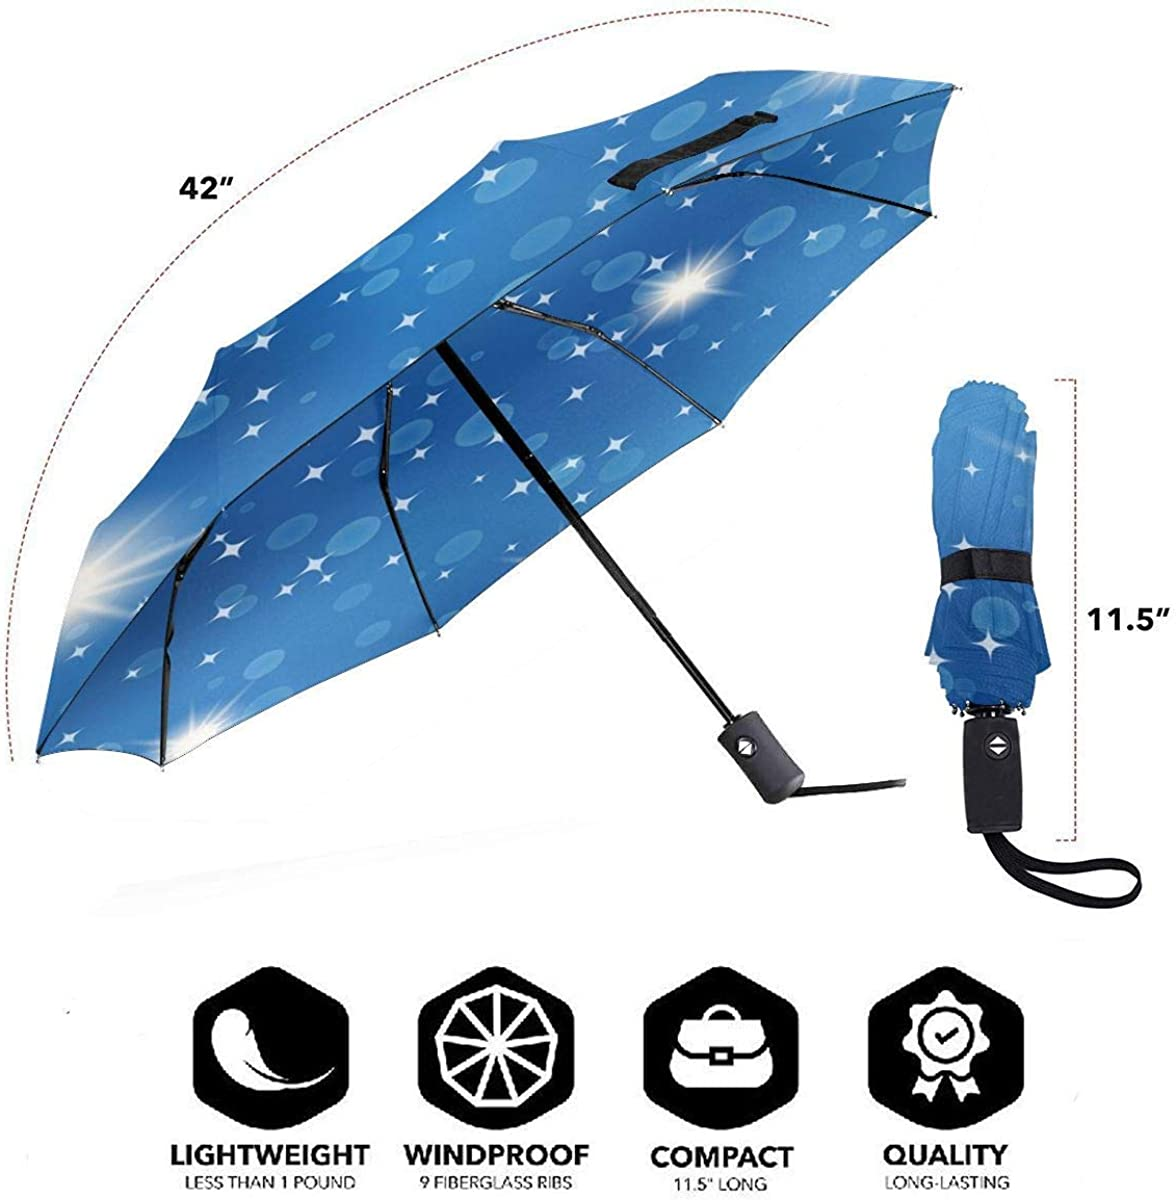 Starry Night Blue Flash Compact Travel Umbrella Windproof Reinforced Canopy 8 Ribs Umbrella Auto Open And Close Button Personalized